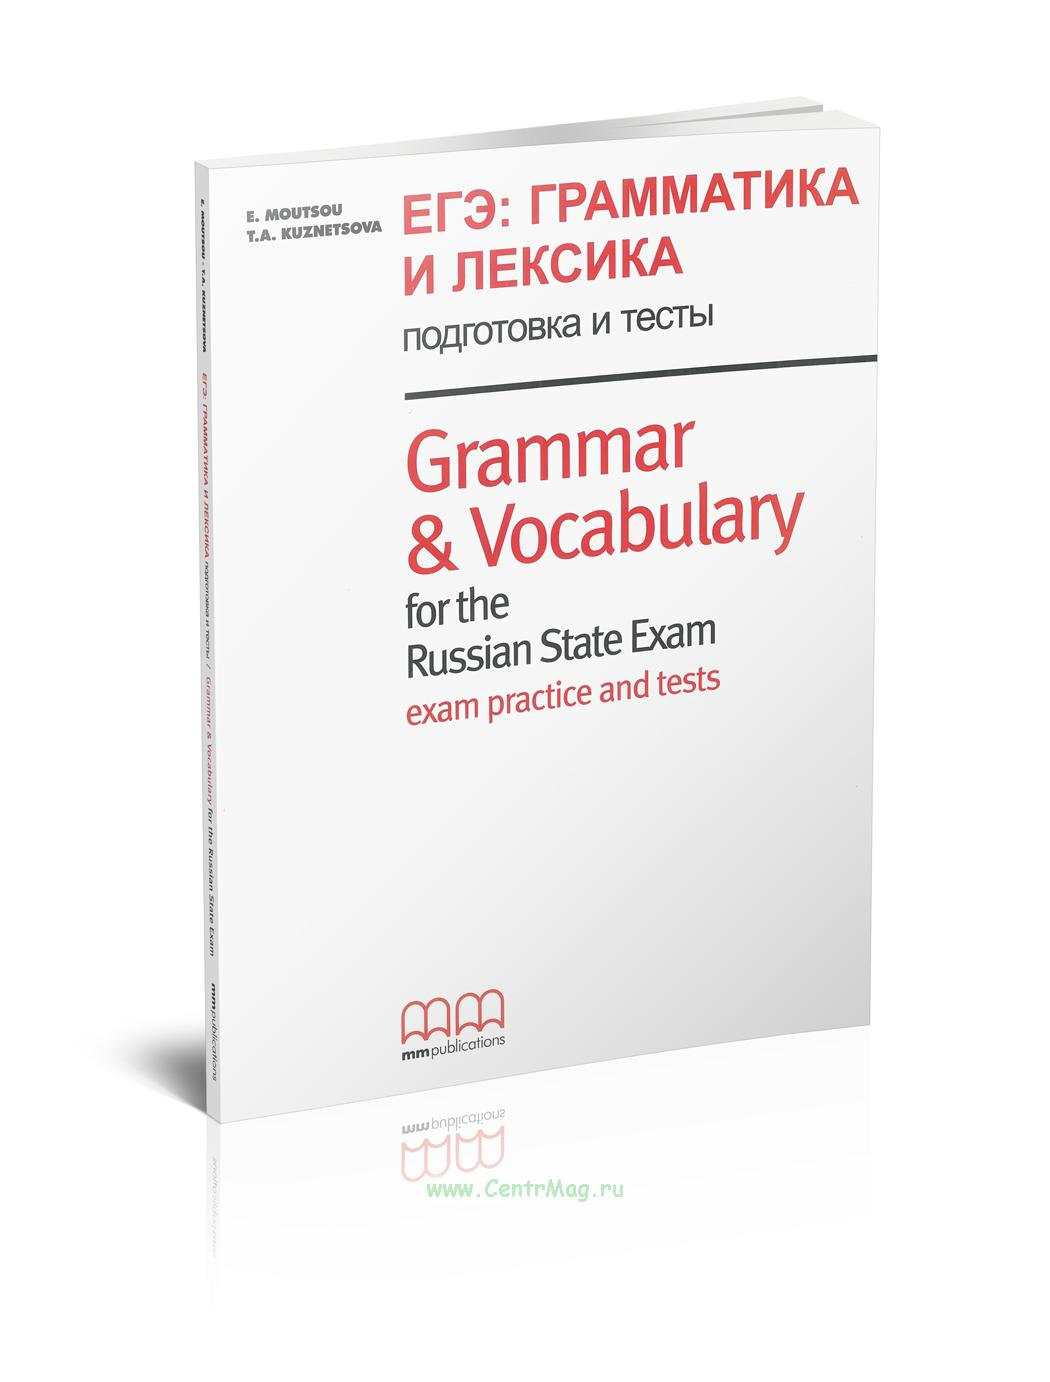 Grammar & Vocabulary For The Russian State Exam. Student's Book. ЕГЭ: грамматика и лексика. Подготовка и тесты